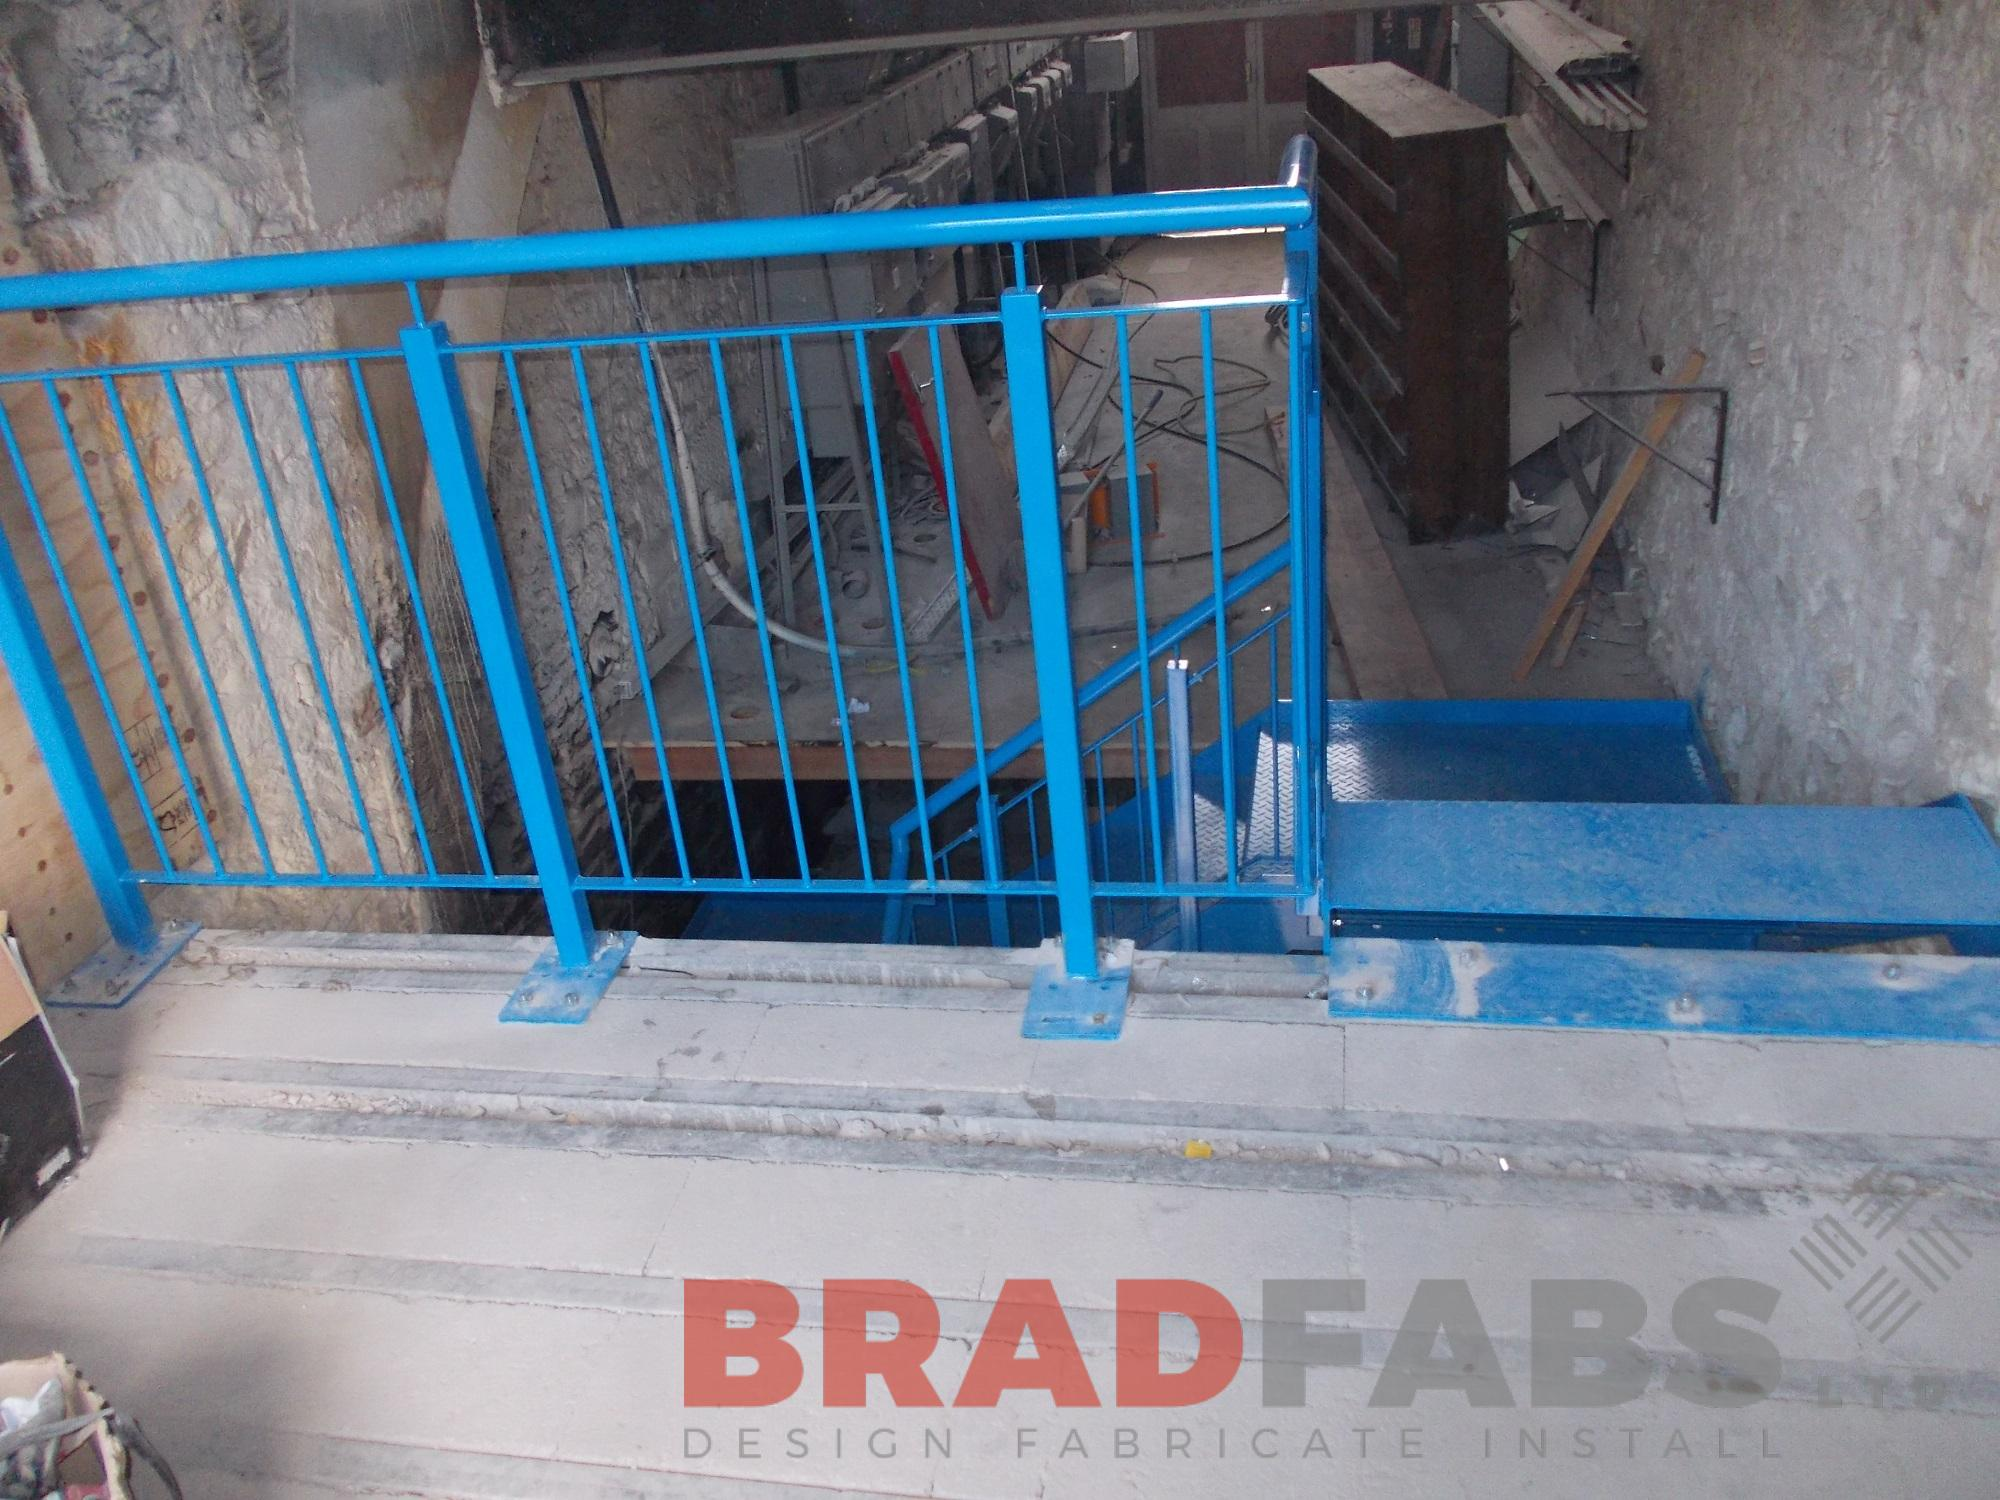 Vertical bar balustrade to the landing at the top of the straight staircase, mild steel and powder coated blue to match by Bradfabs